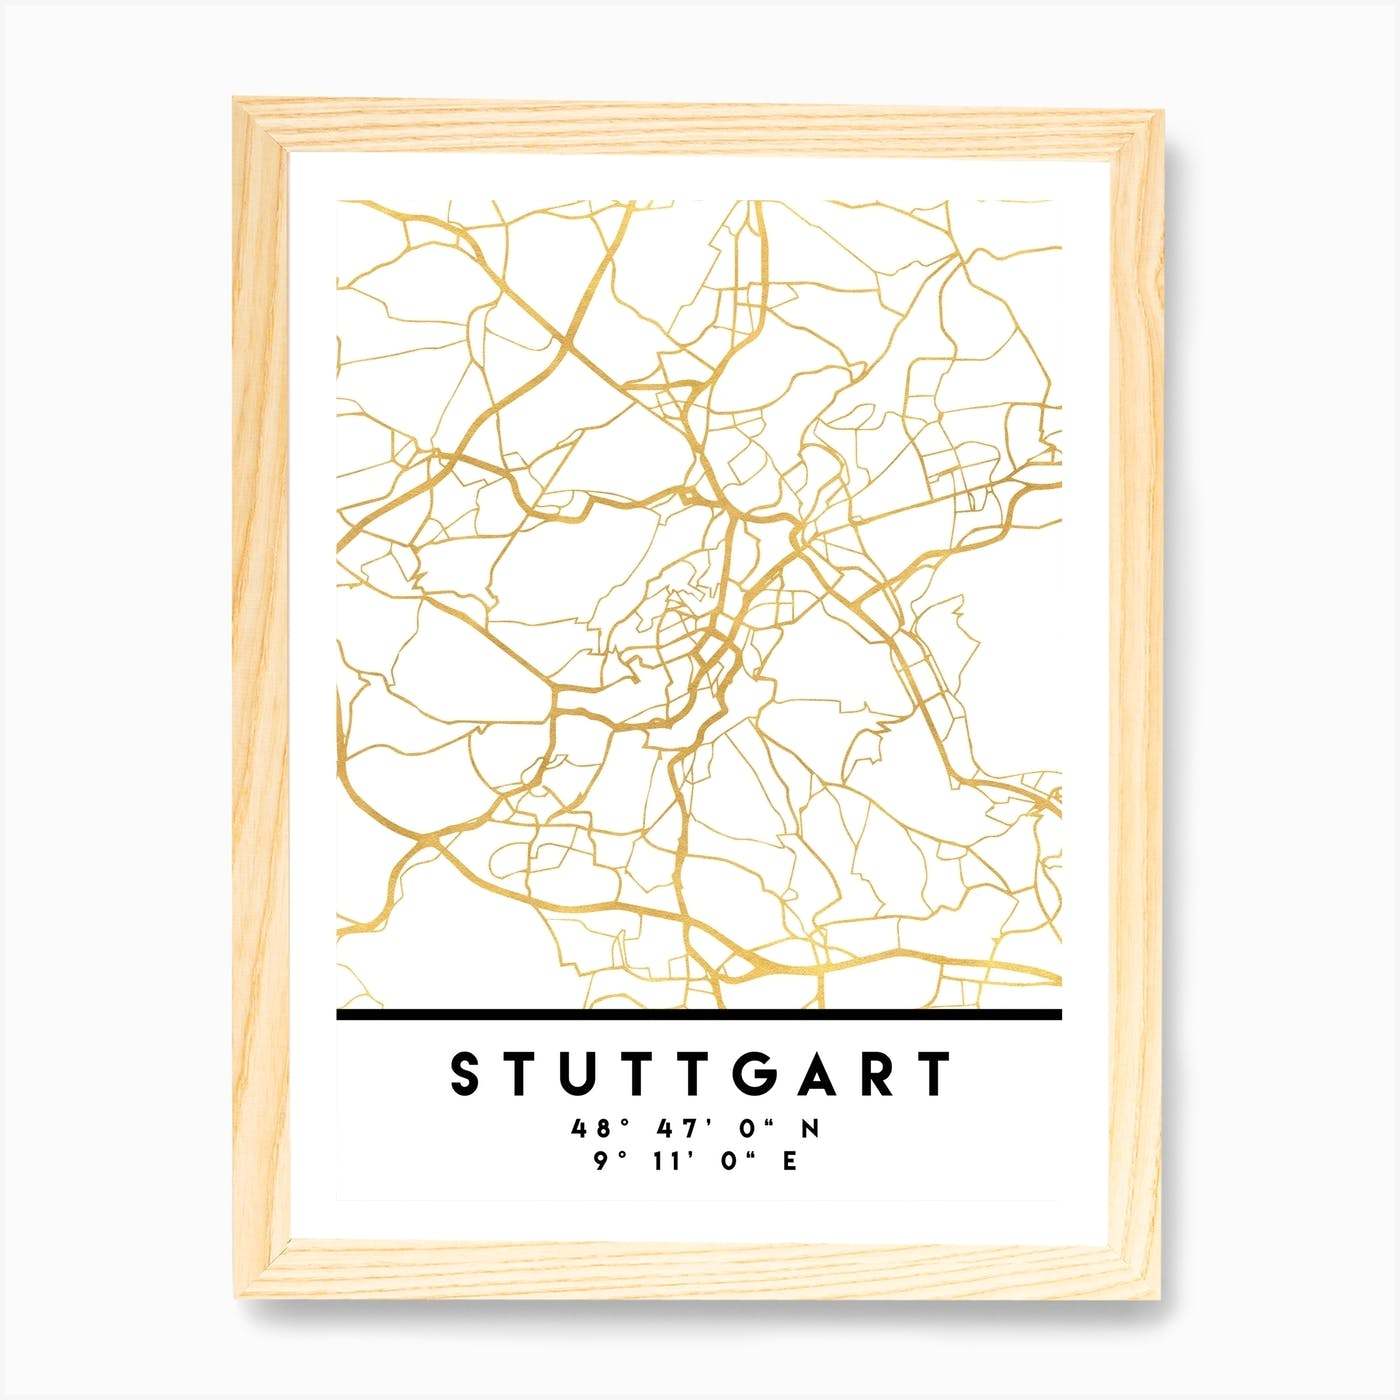 STUTTGART GERMANY Street Sign German flag city country road wall gift